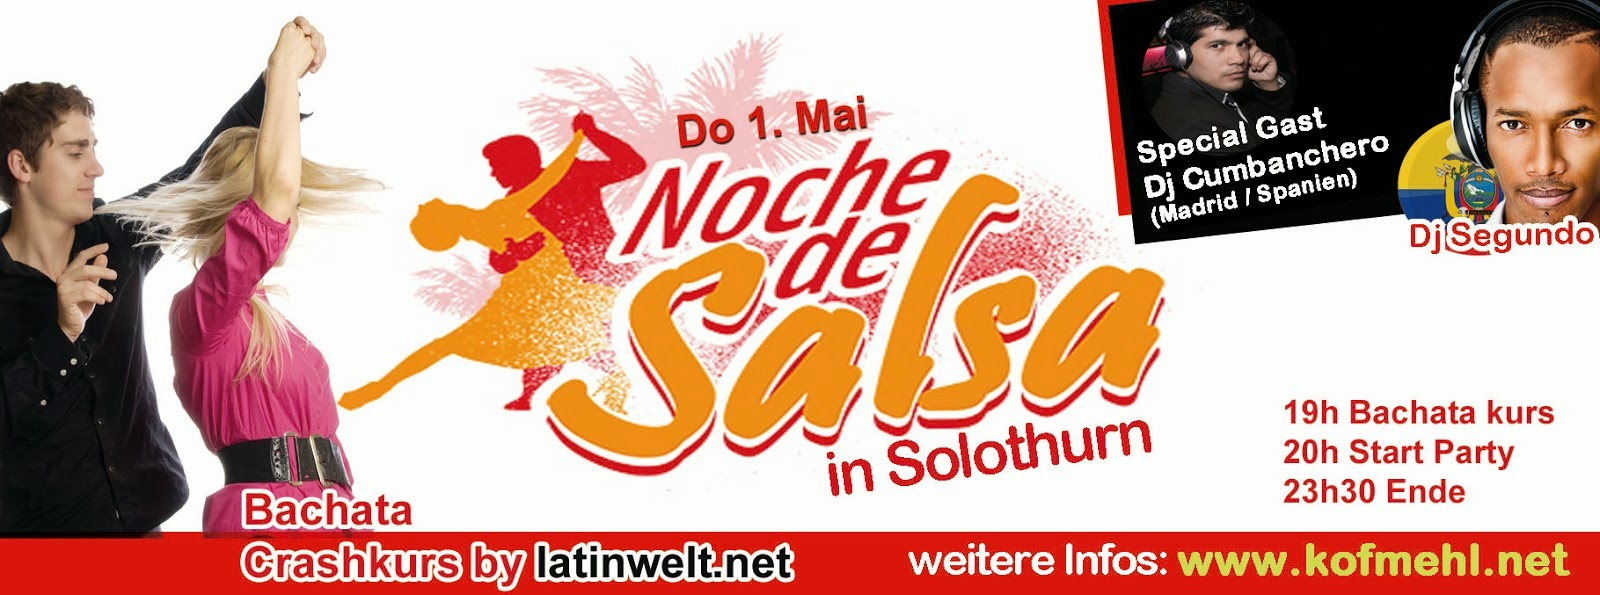 DO 1. Mai - Party - Solothurn